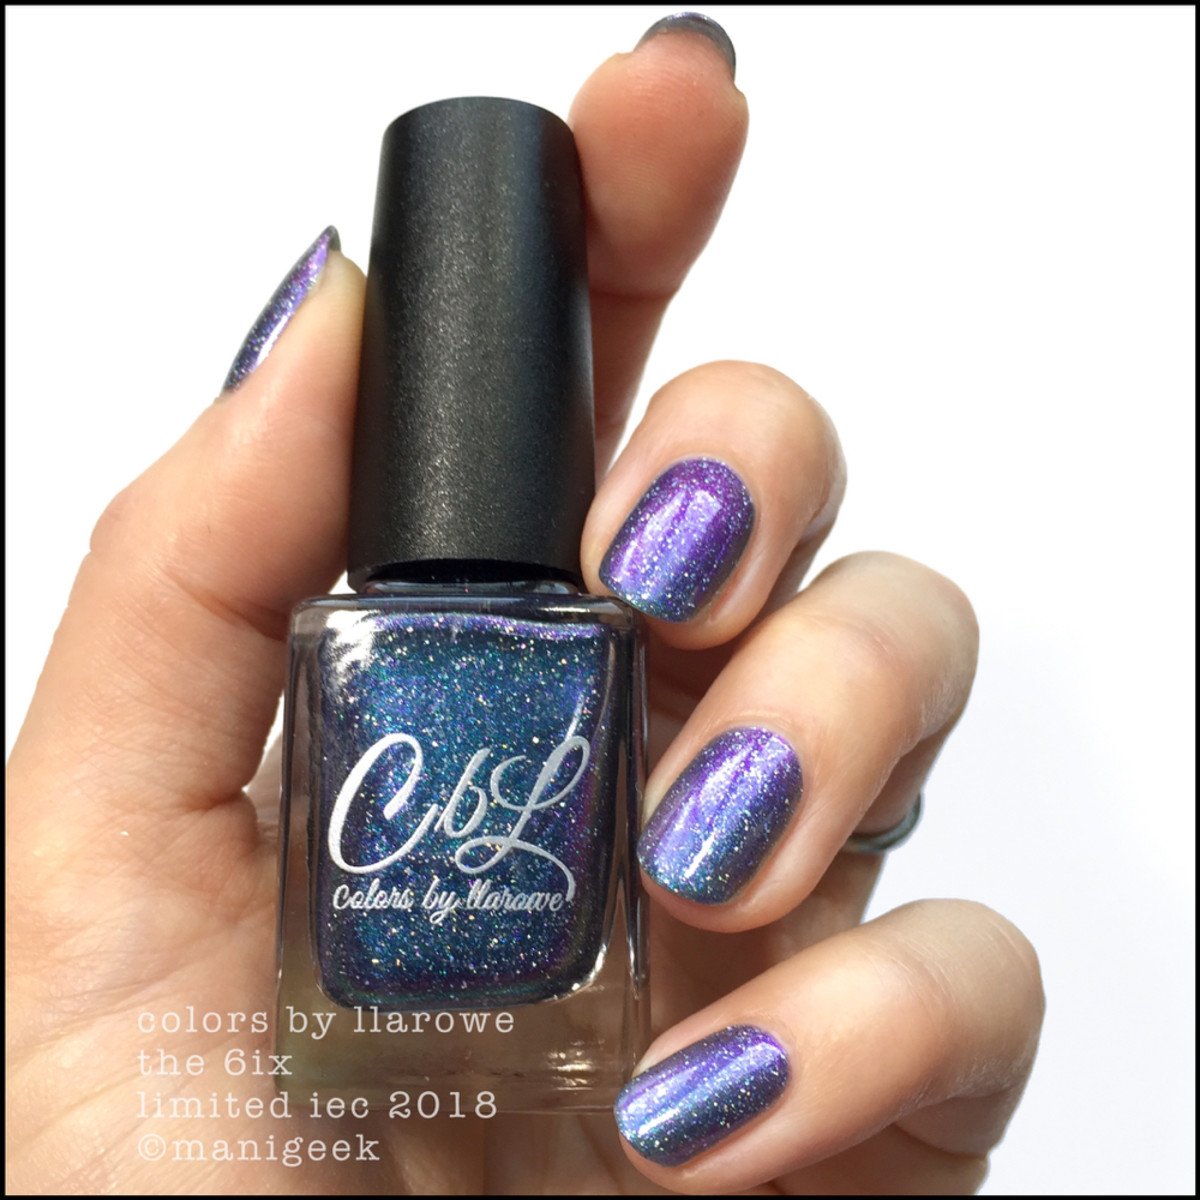 Colors by Llarowe The 6ix - Limited Edition IEC 2018 Swatches